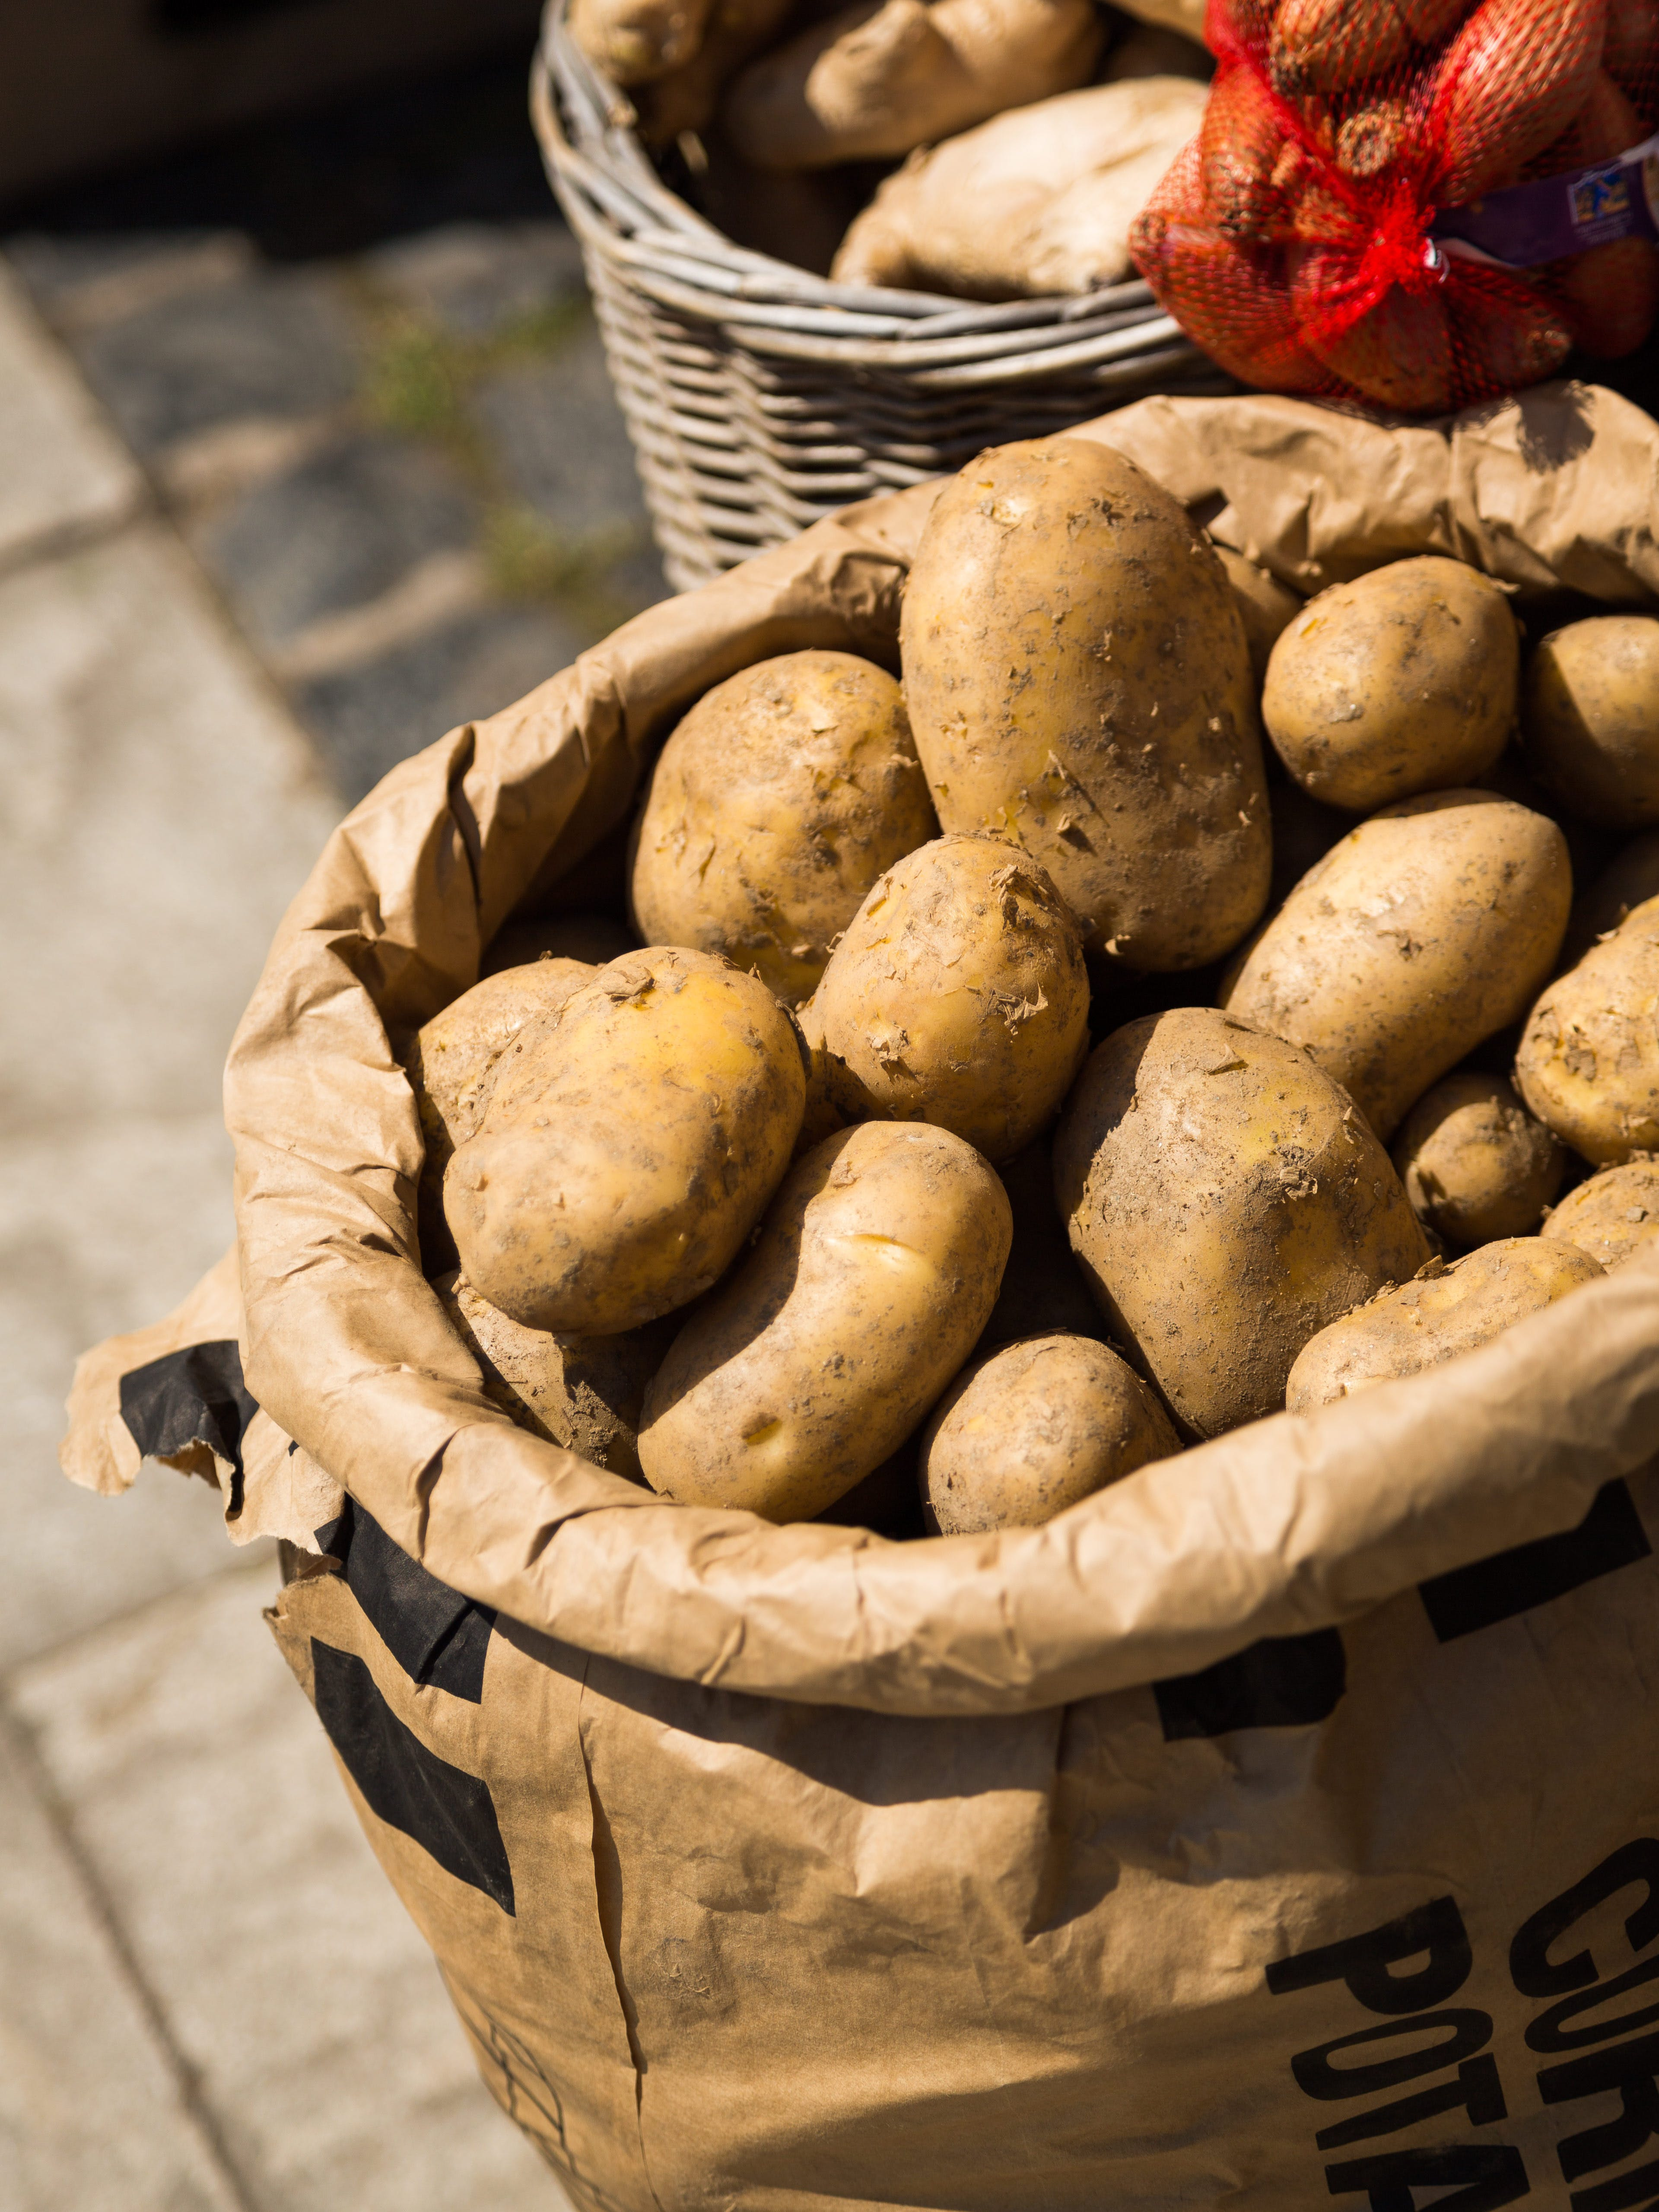 Free stock photo of food, greengrocer, potatoes, sack